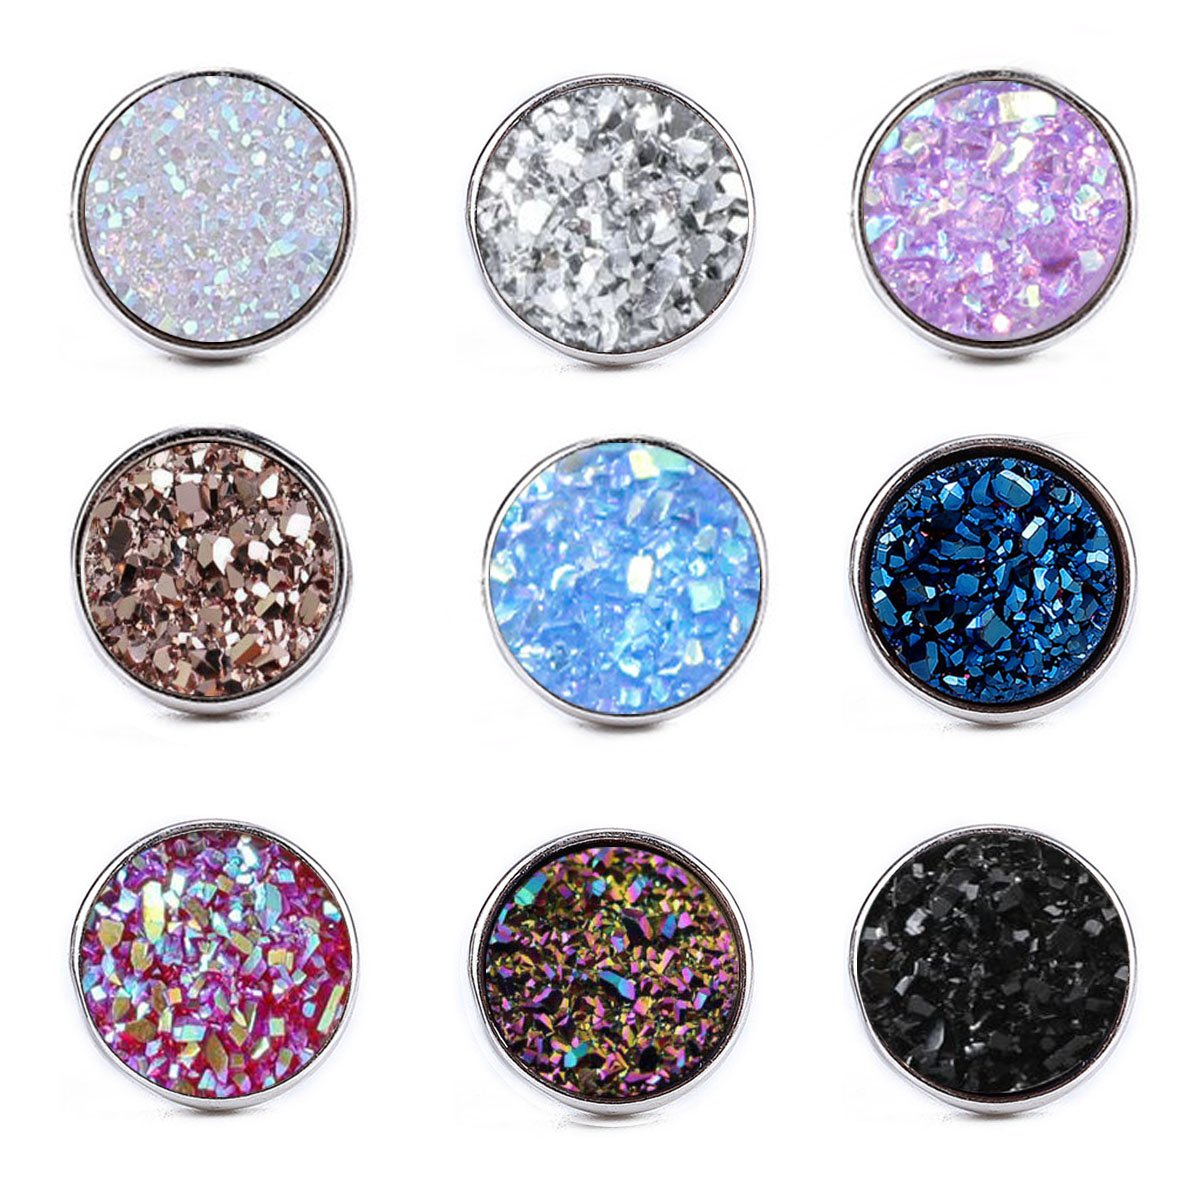 Dolovely Stainless Steel Druzy Stud Earrings Set for Girls Women Hypoallergenic Pierced Earrings ESET03-US